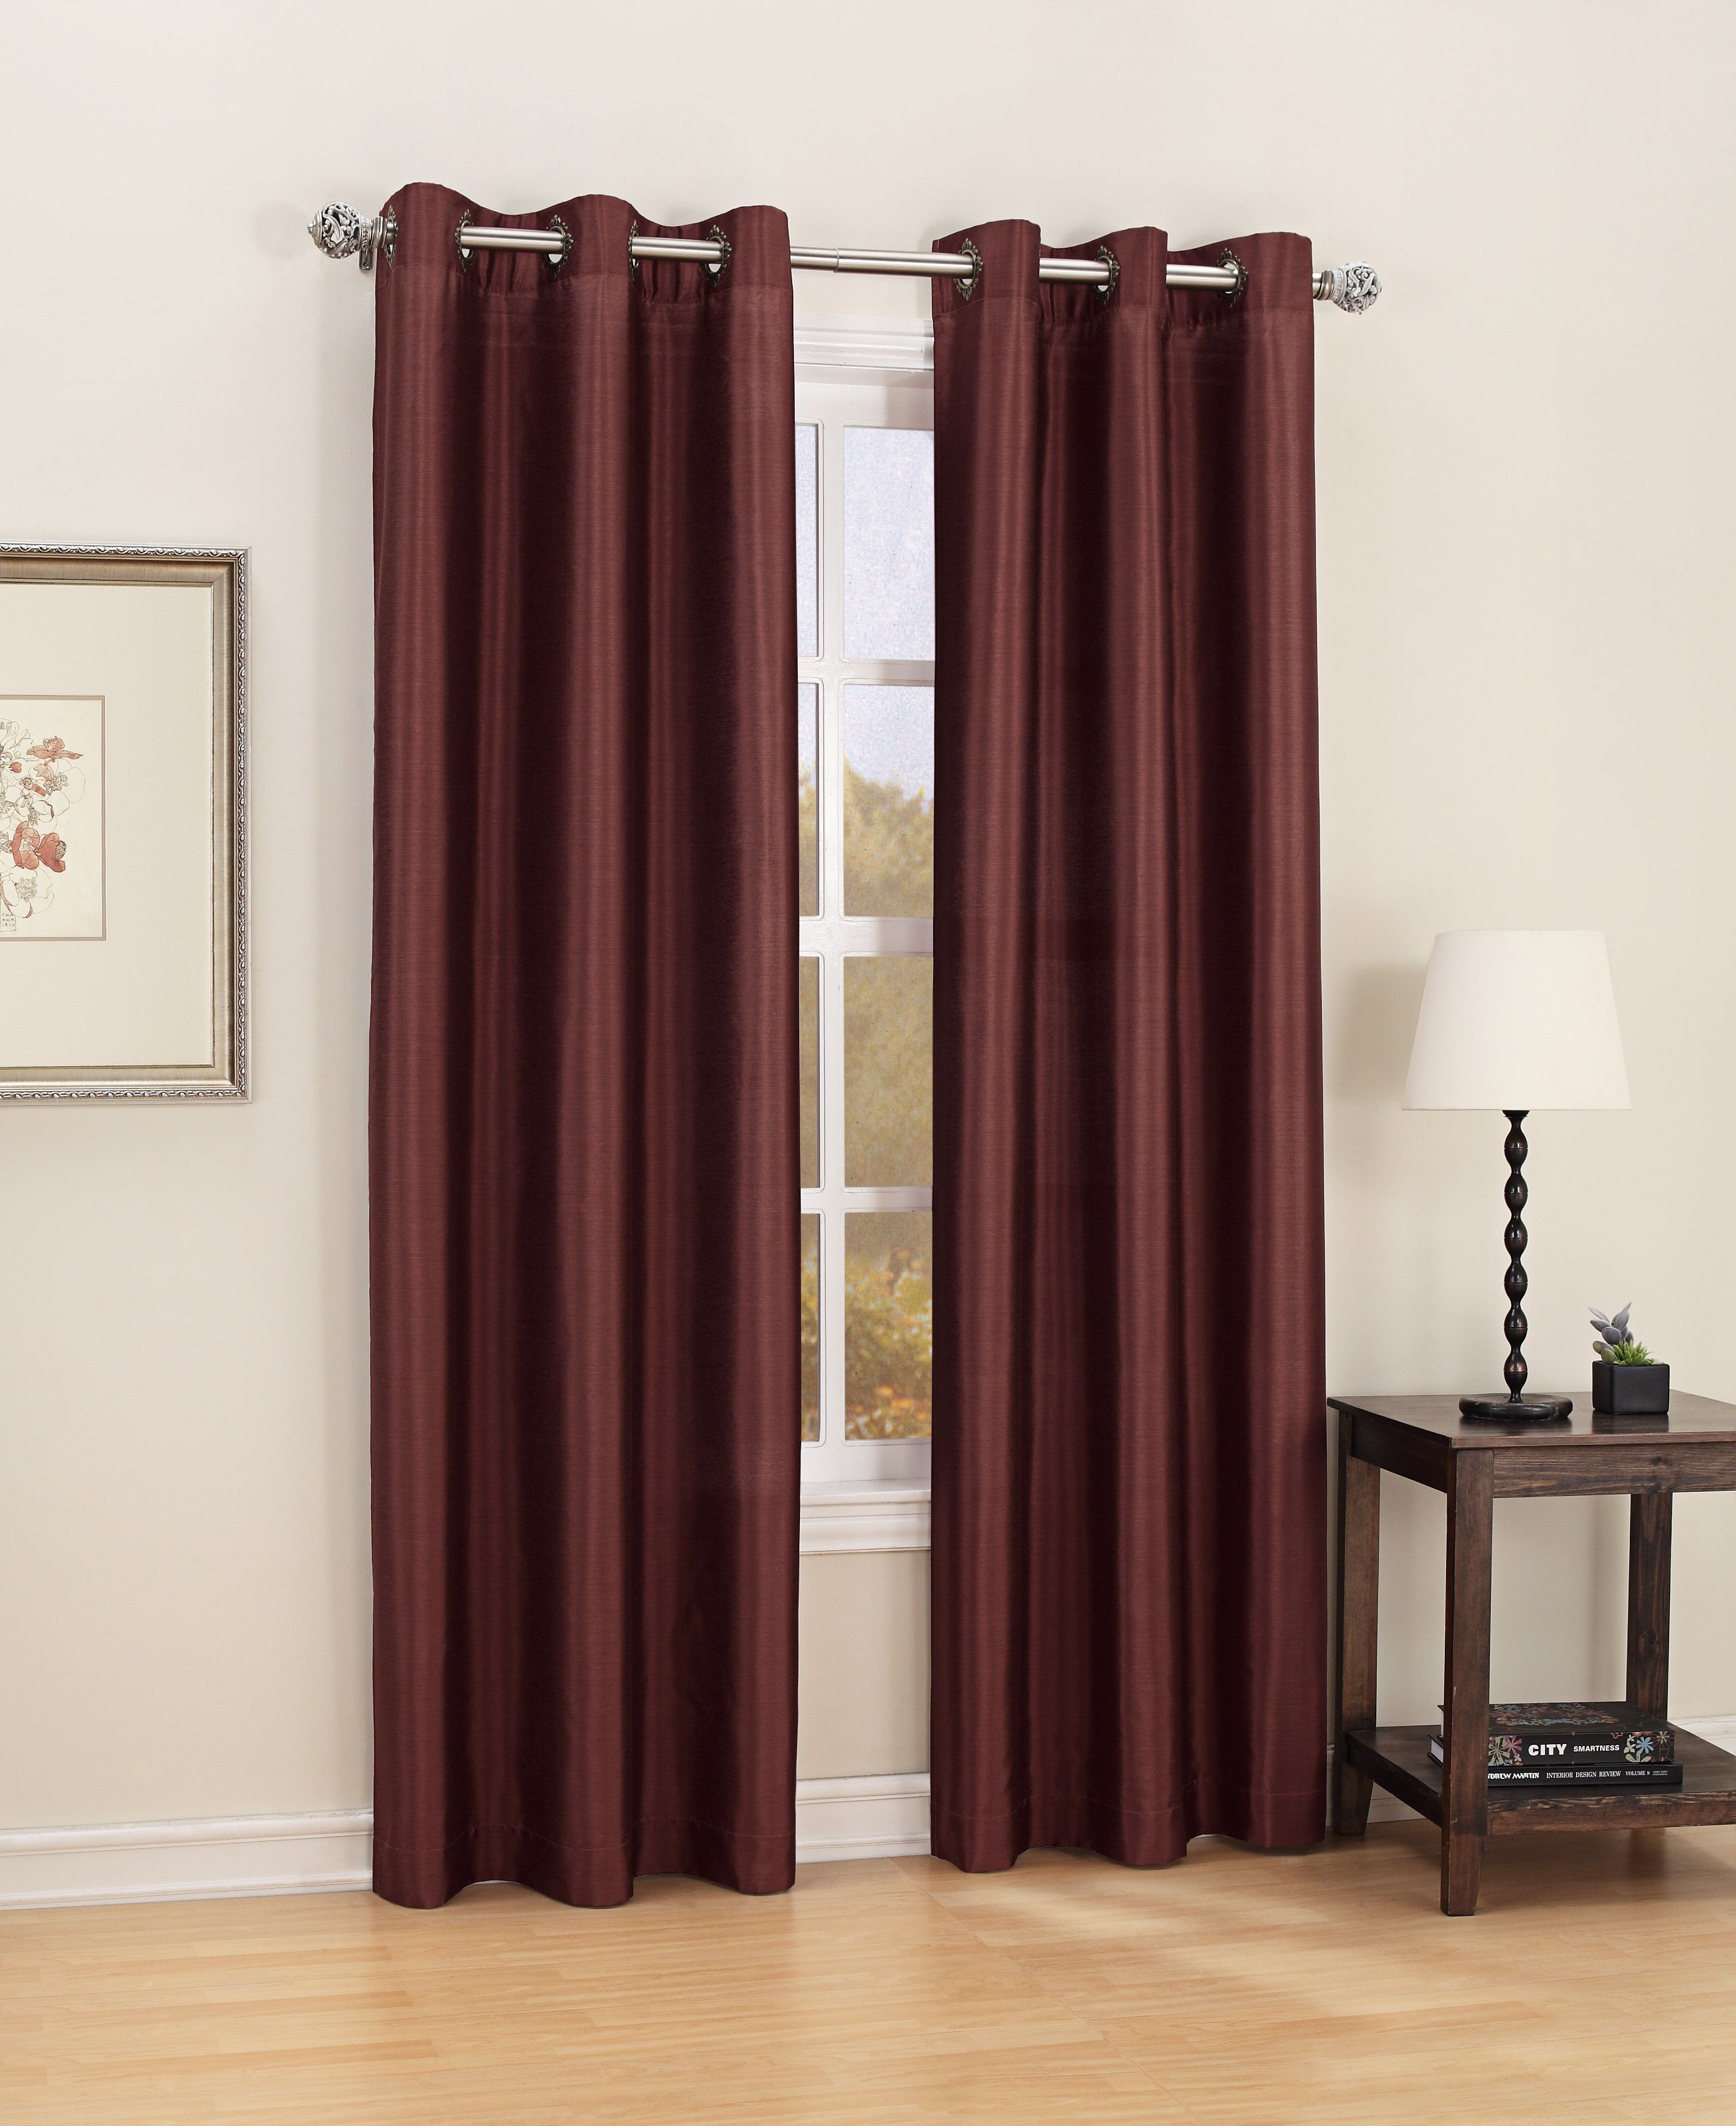 pair the theatre beyond window long expand drapes inch to walmart curtain target pictures splendor at and between wide difference click definition is drape drapery pinch treatments sheer semi bath rods what pleat curtains discount rod slang ideas